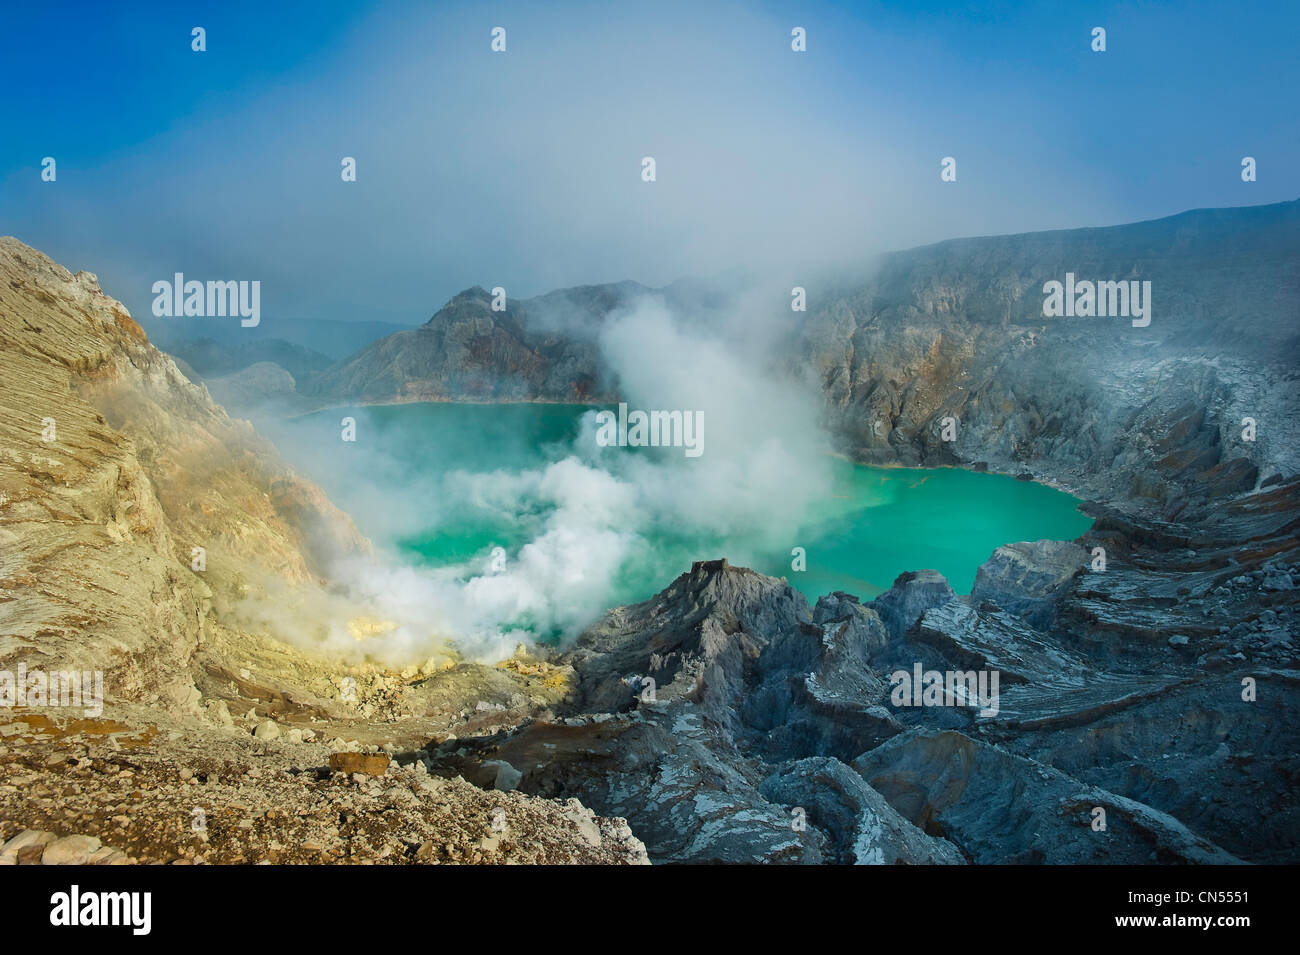 Indonesia, Java, East Java Province, Mining Sulfur by hand in Kawah Ijen volcano (2500m), one of the last places - Stock Image